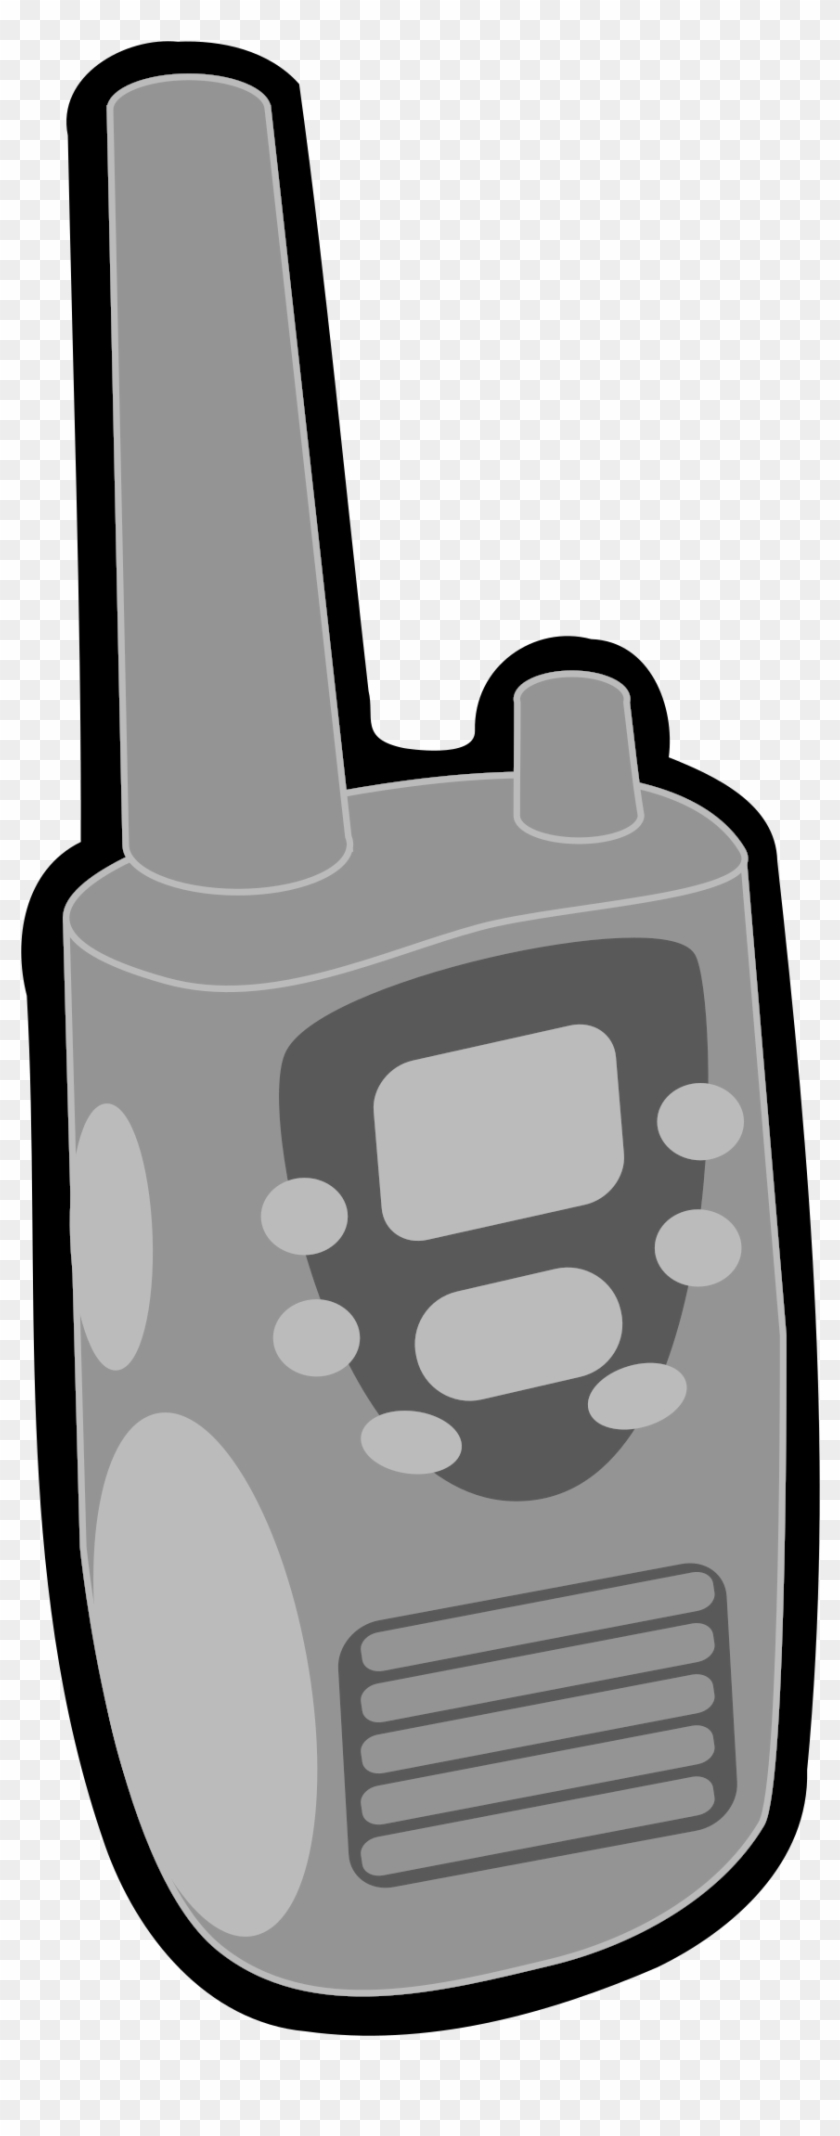 Walkie talkie image clipart vector freeuse This Free Icons Png Design Of Walkie Talkie , Png Download ... vector freeuse